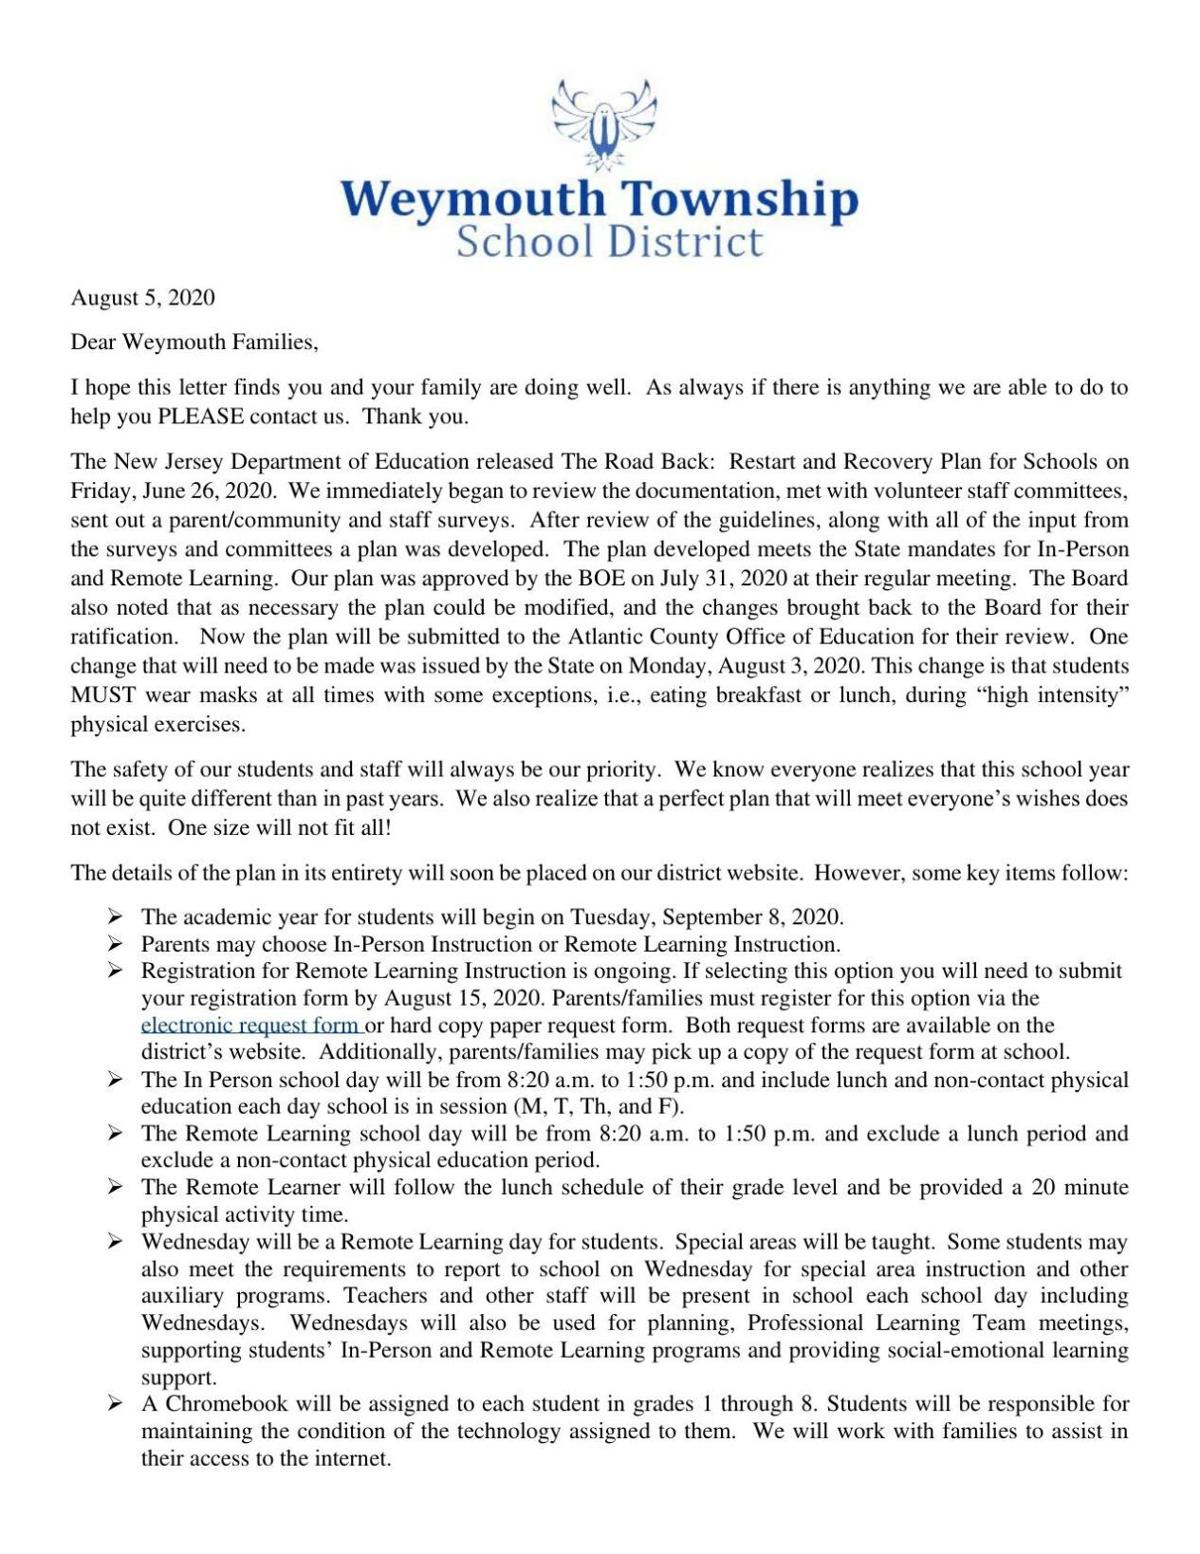 Weymouth Township reopening letter